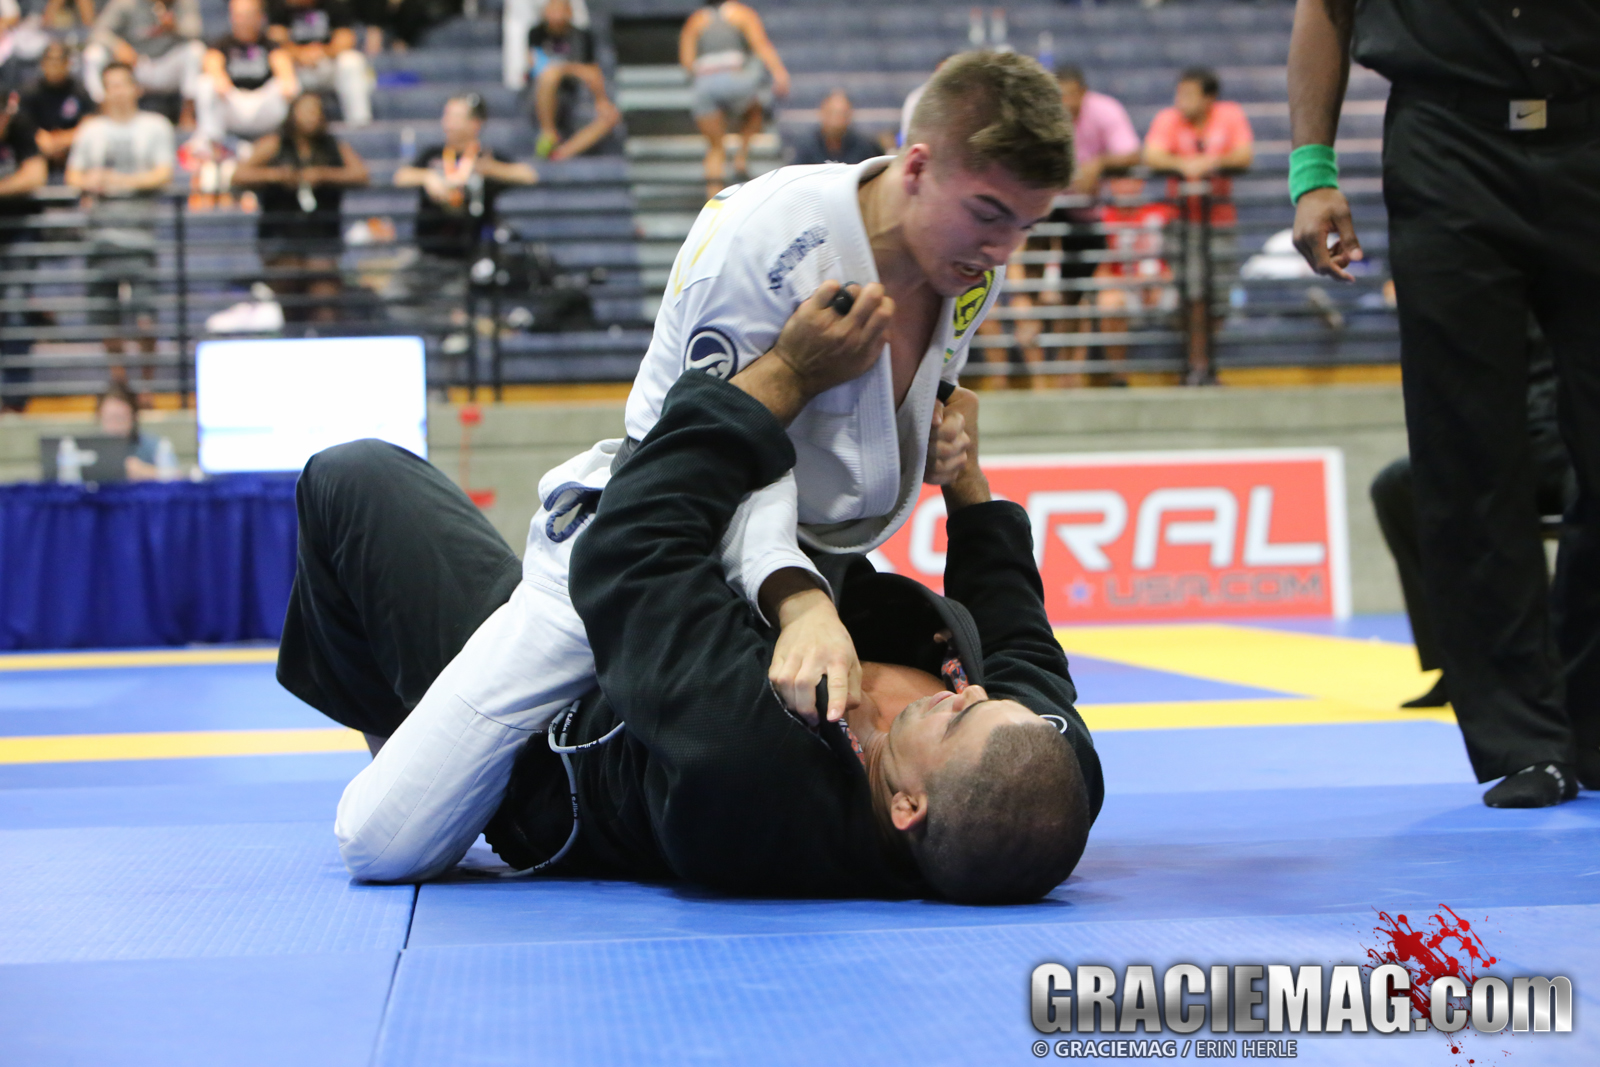 Gianni Grippo wins another IBJJF absolute. Photo: Erin Herle